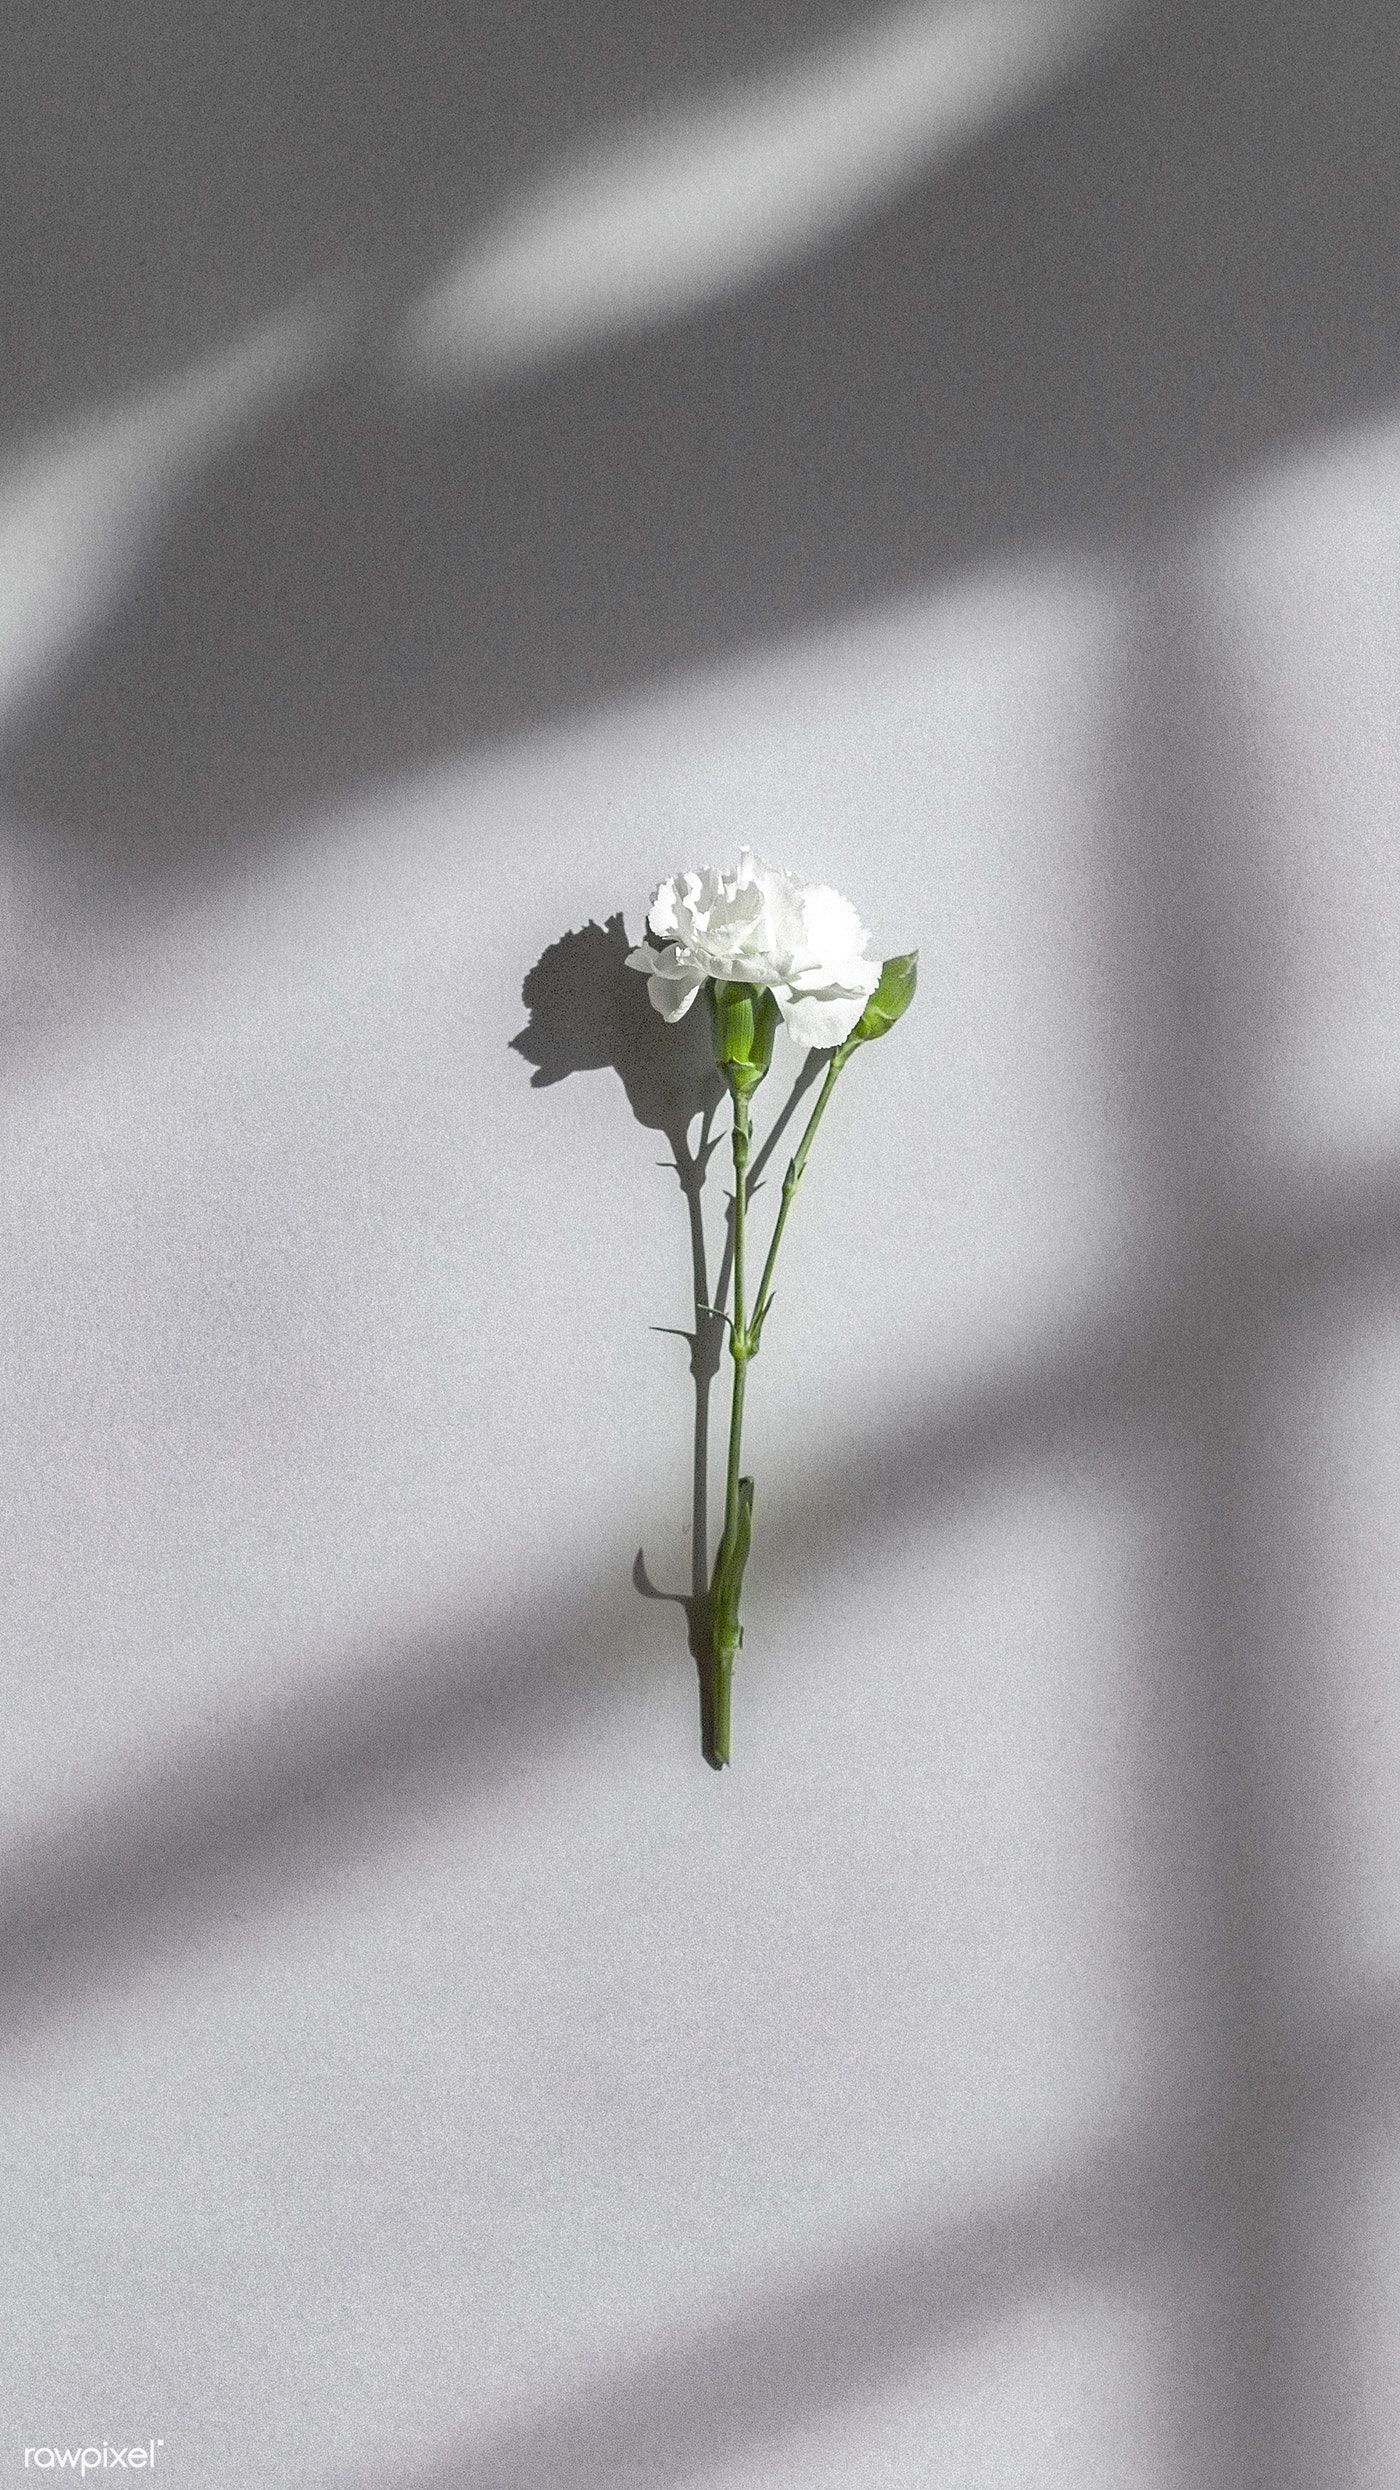 Download premium image of White carnation on a gray wall